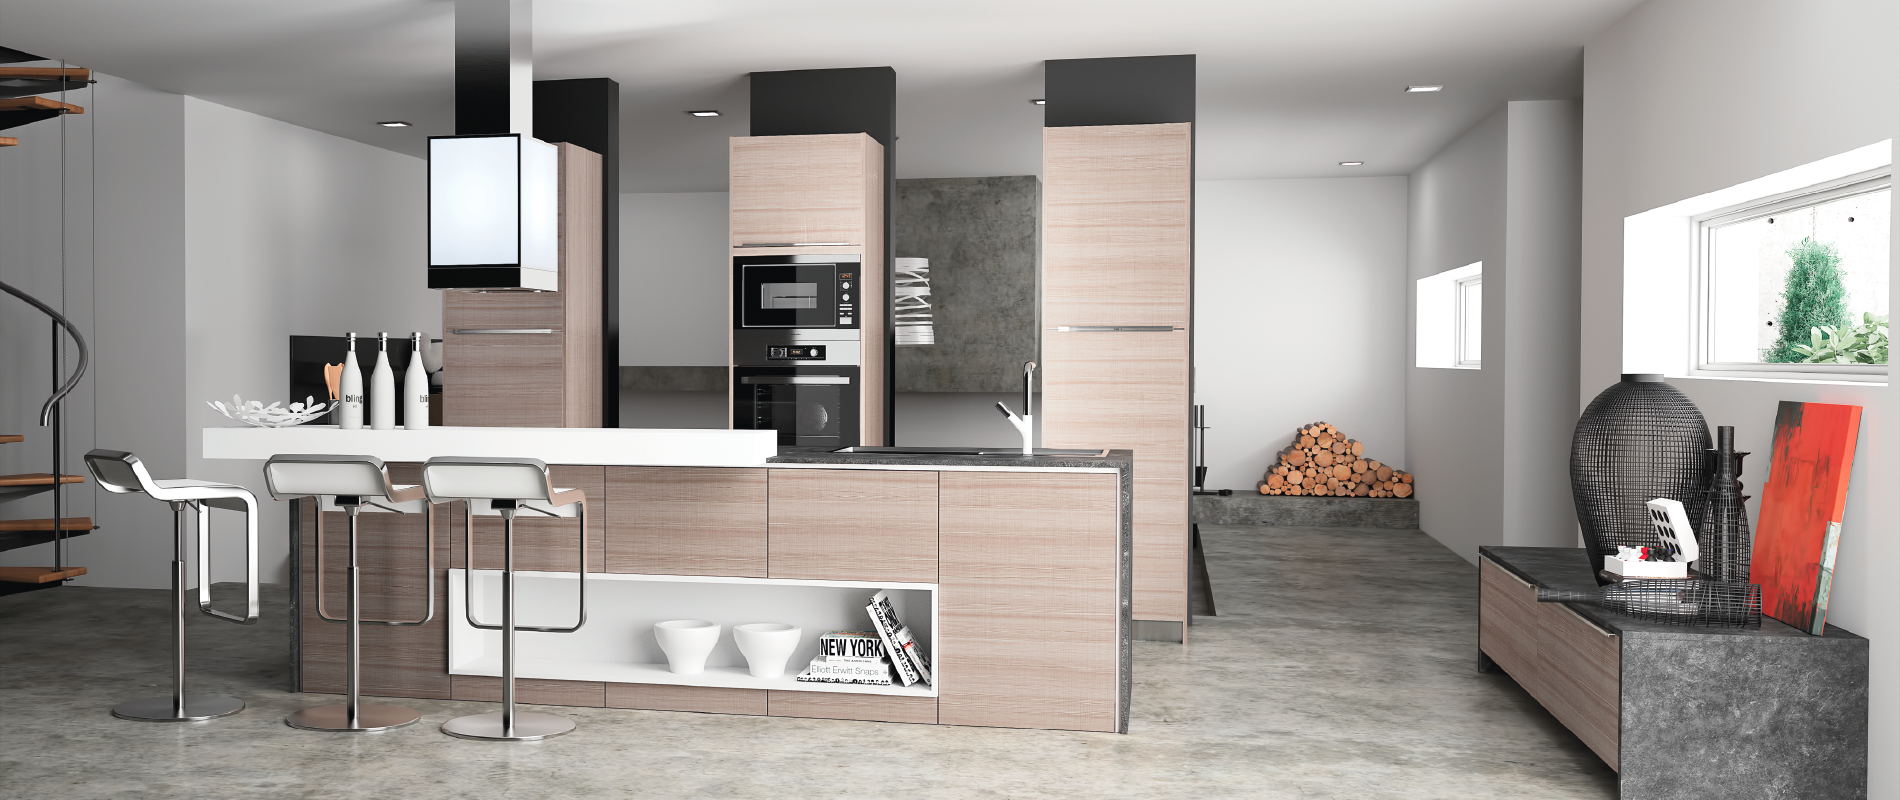 Cuisine contemporaine de qualit monza 2 haut de gamme for Cuisine contemporaine design